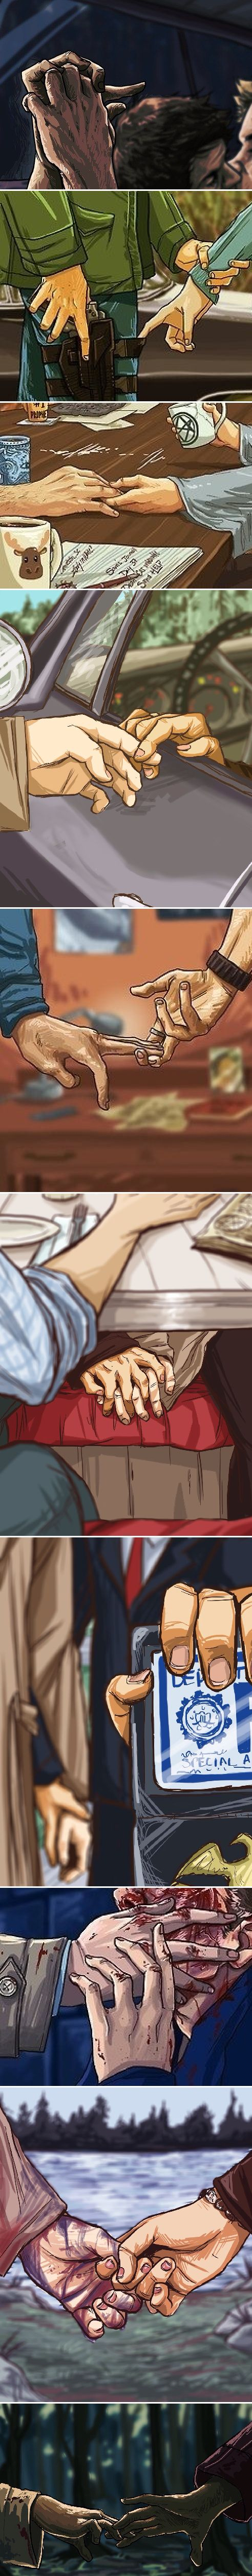 Destiel + hands #spn More